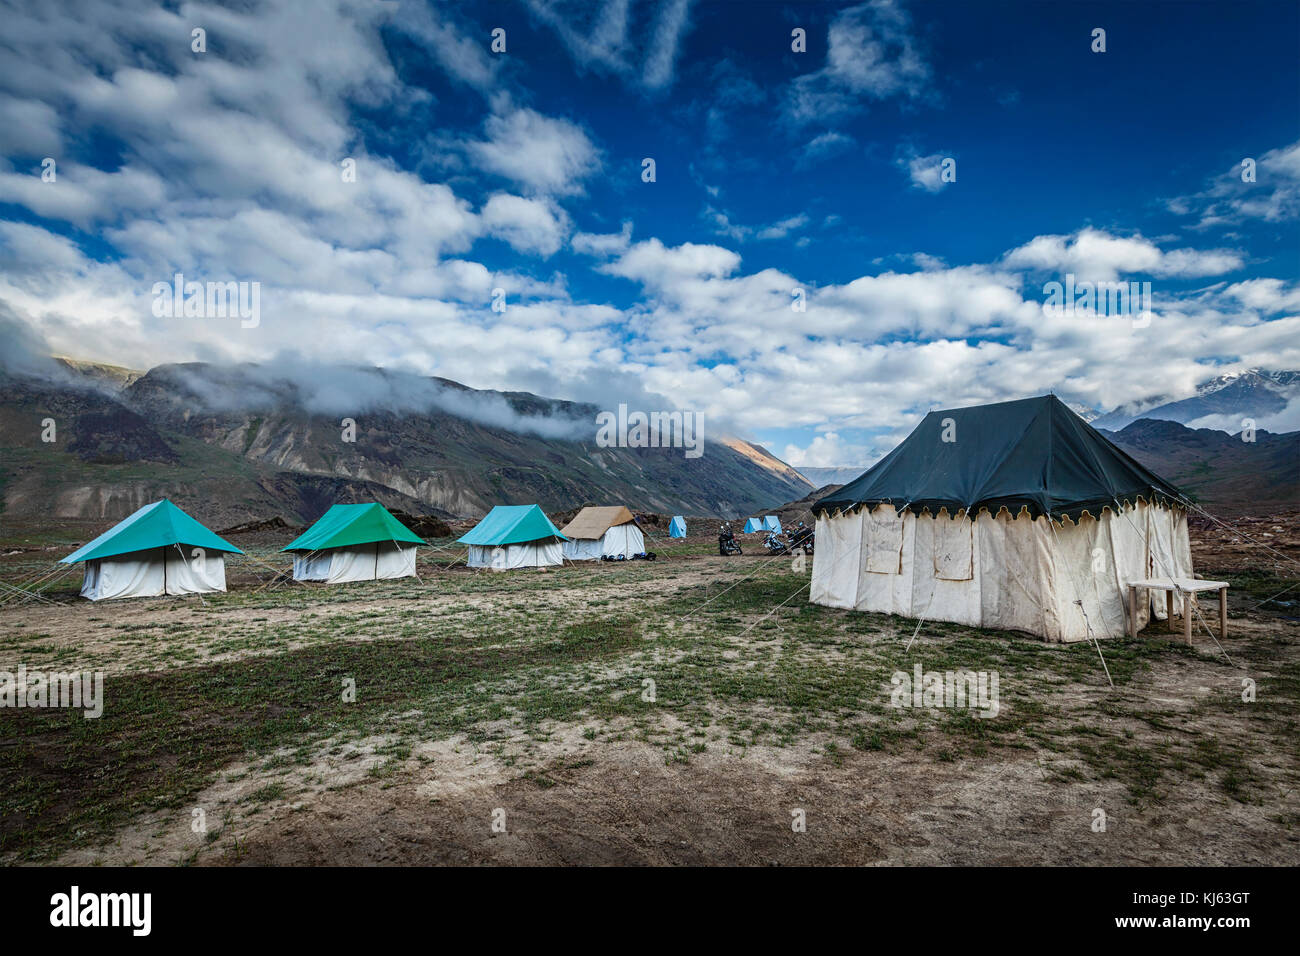 Tent camp in Himalayas - Stock Image